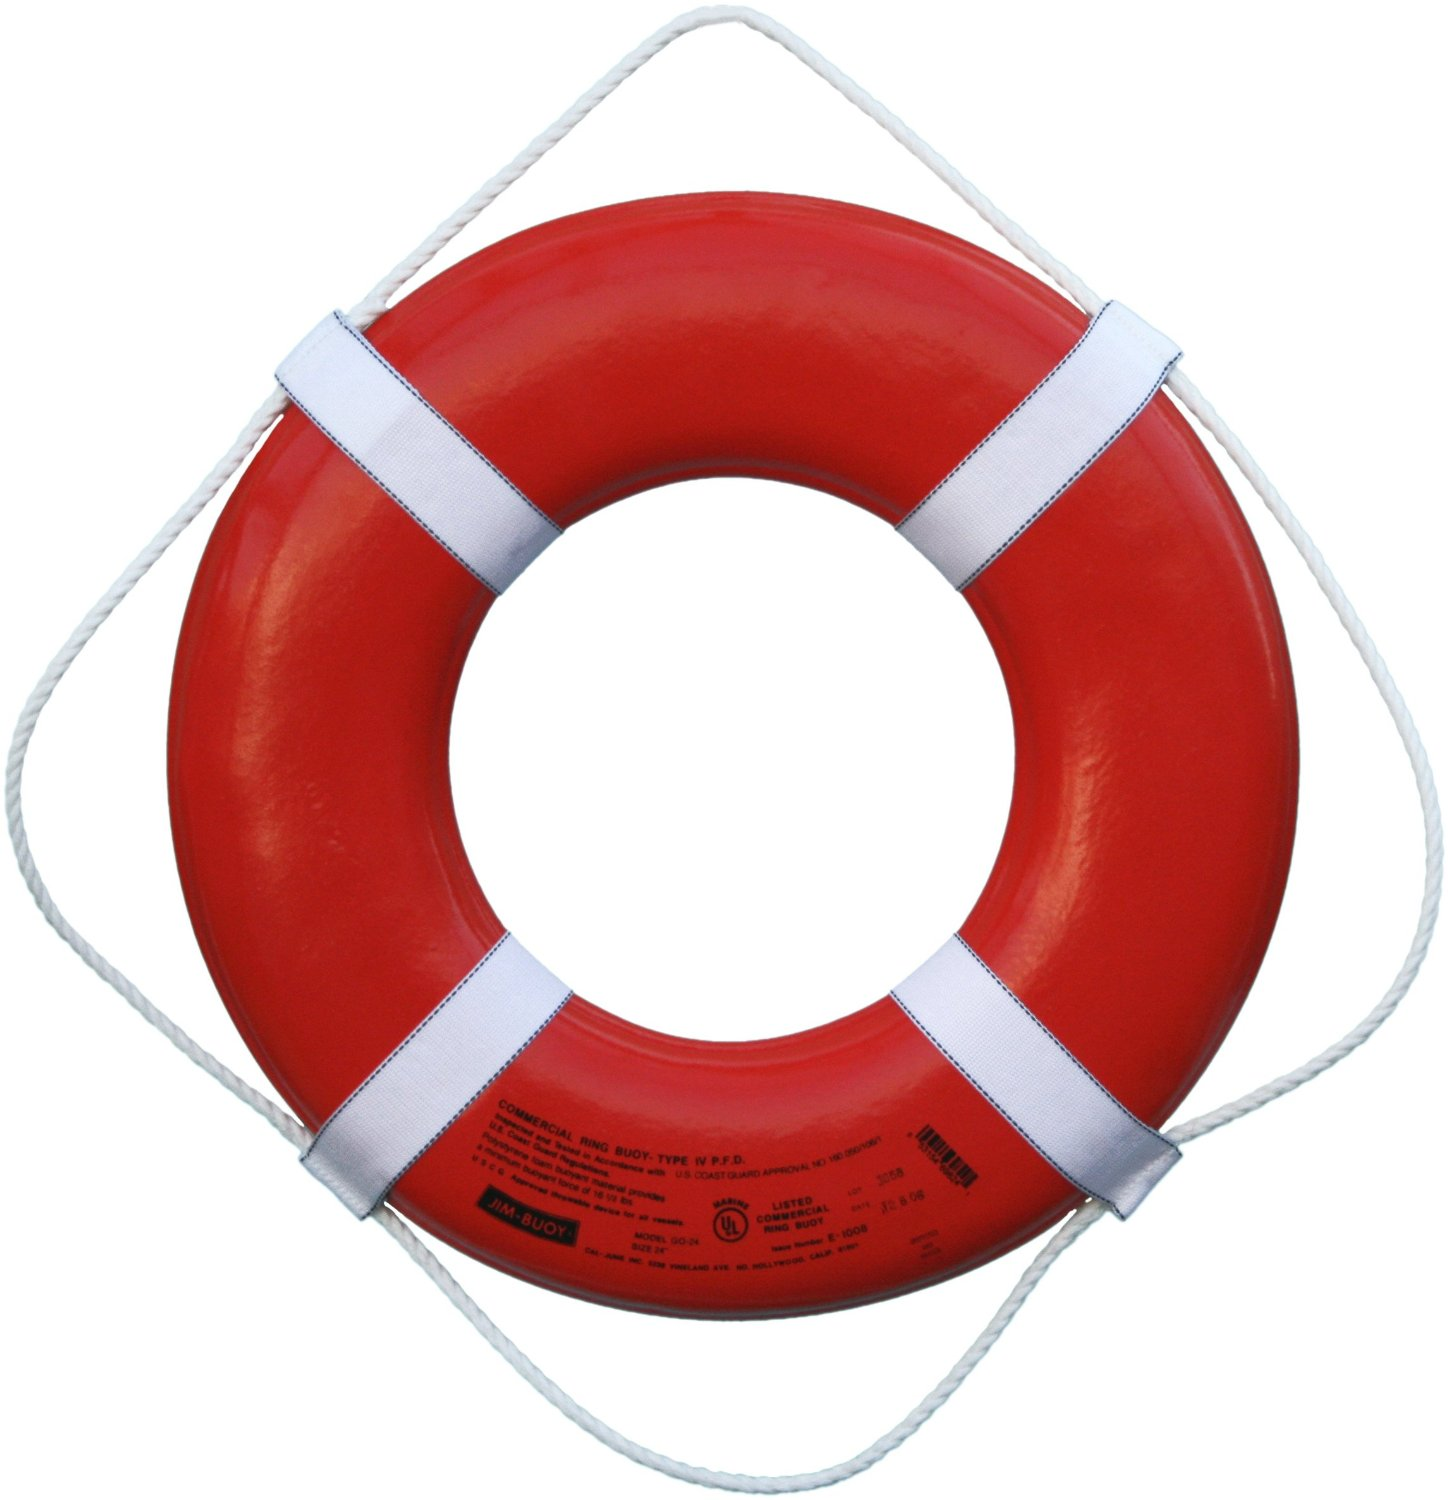 Cal June USCG Approved Jim Buoy Marine Boat Life Ring Buoy Orange 24 ...